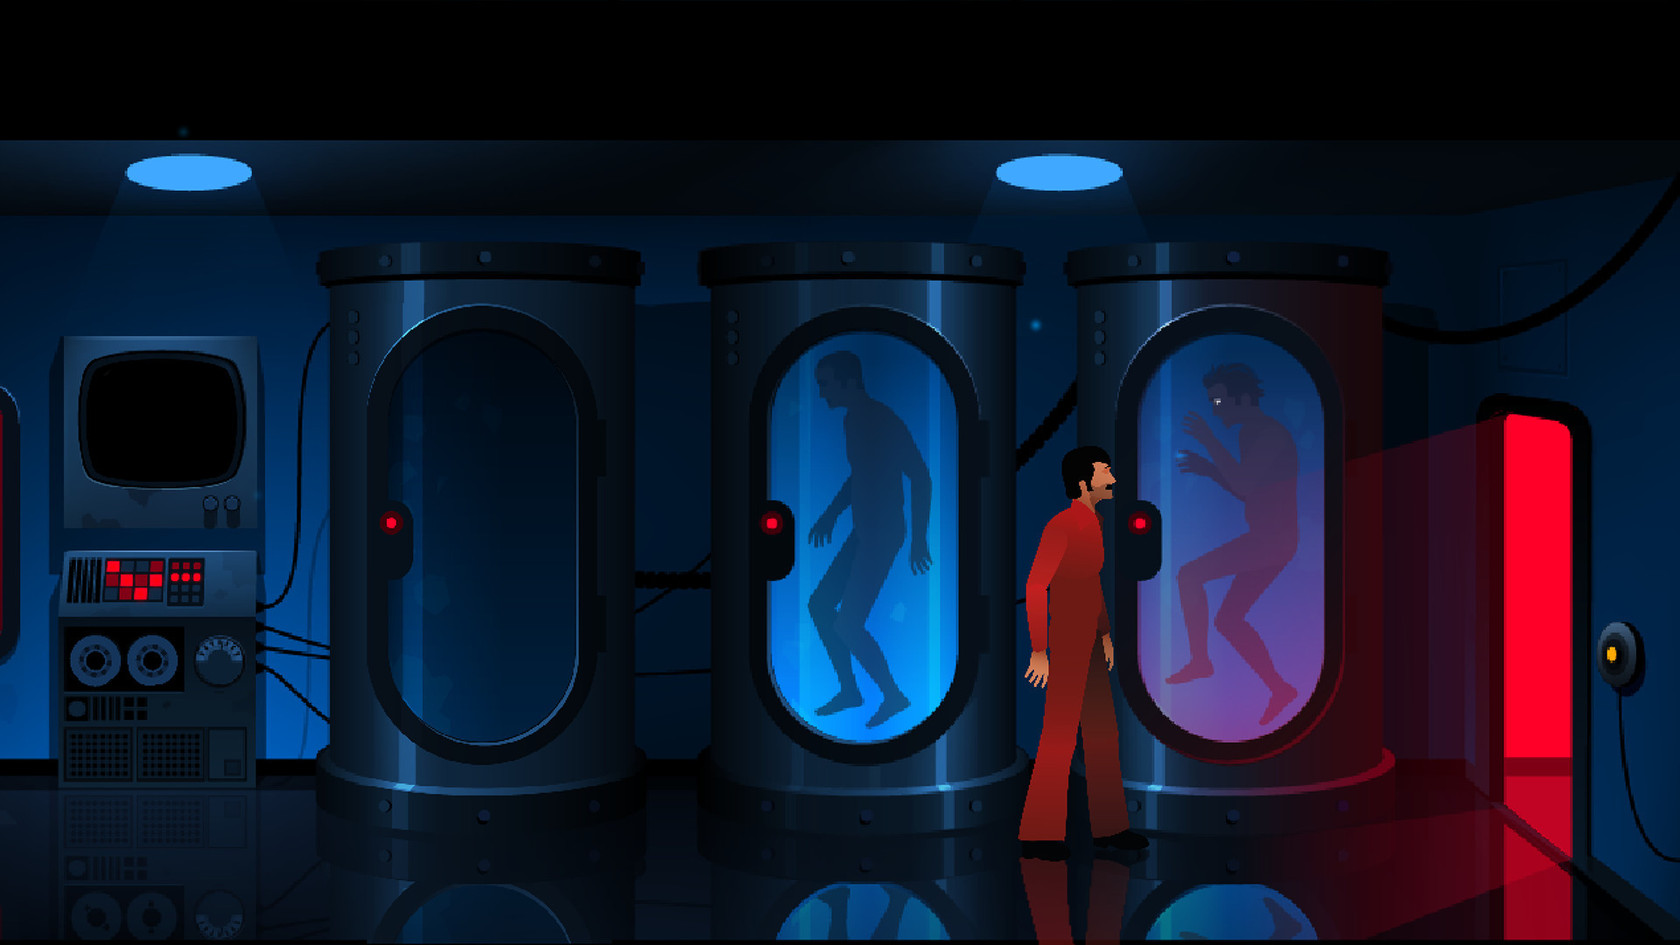 the future of cryogenics for humankind Ranking 25 movies set in a dystopian future movies best of/worst of share tweet sep 24, 2014 25 neville is now the last human survivor in what is left of.